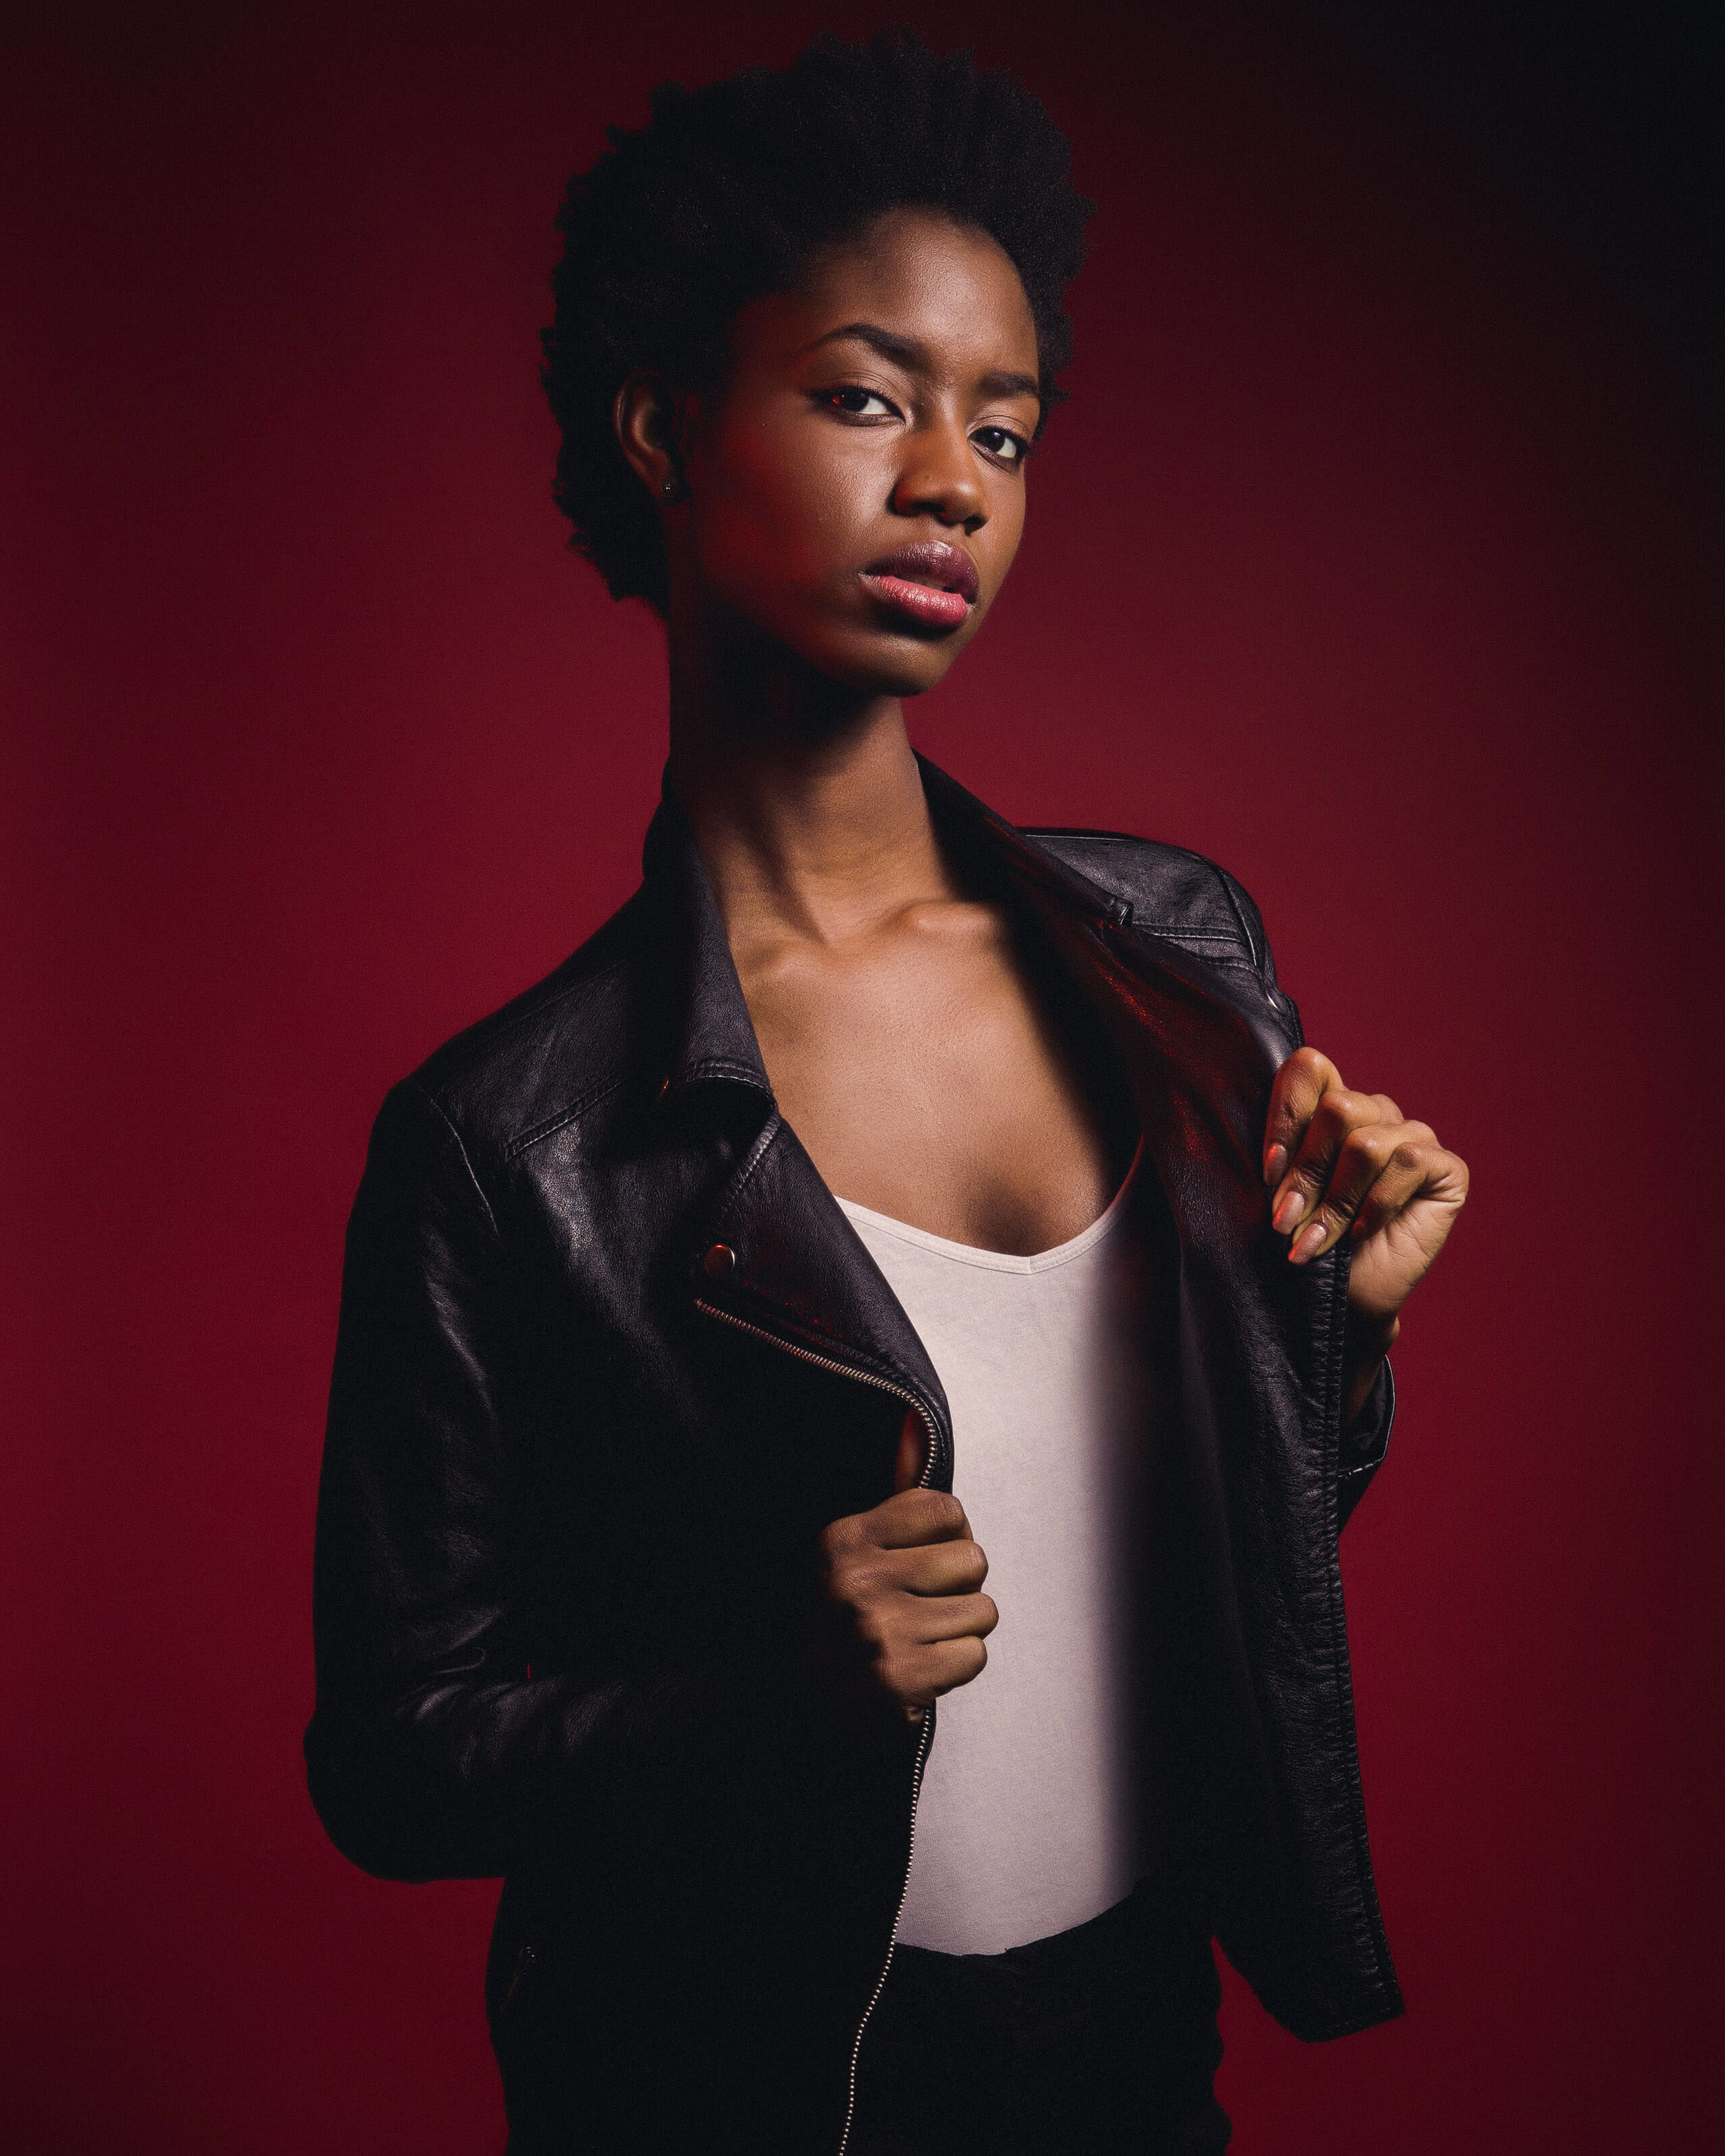 chicago fashion photography of female model wearing black jacket in photo studio